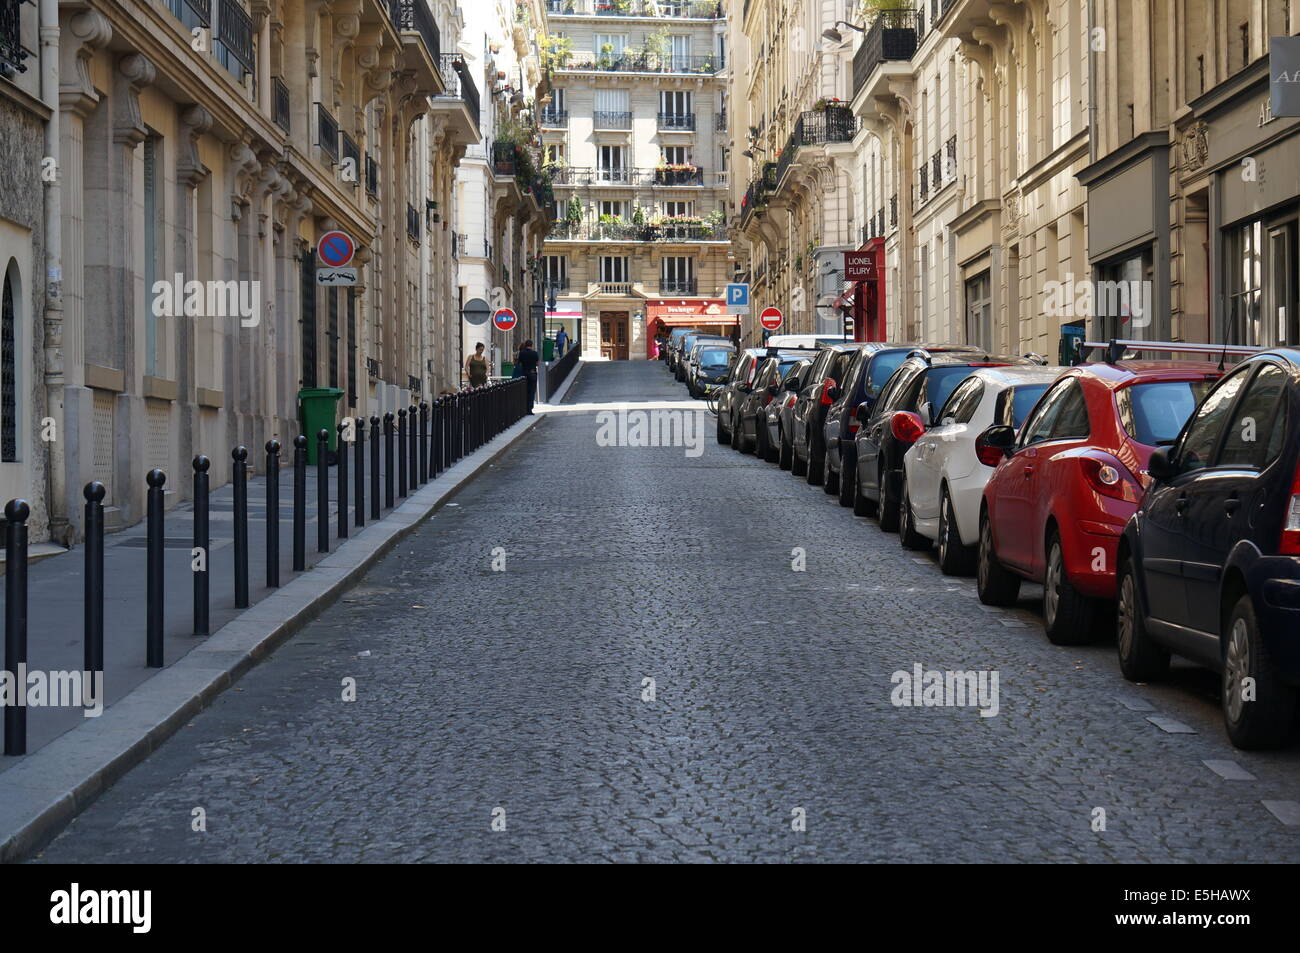 Paris street around with buildings, with black railings separating sidewalk and road on the left, cars parked on - Stock Image